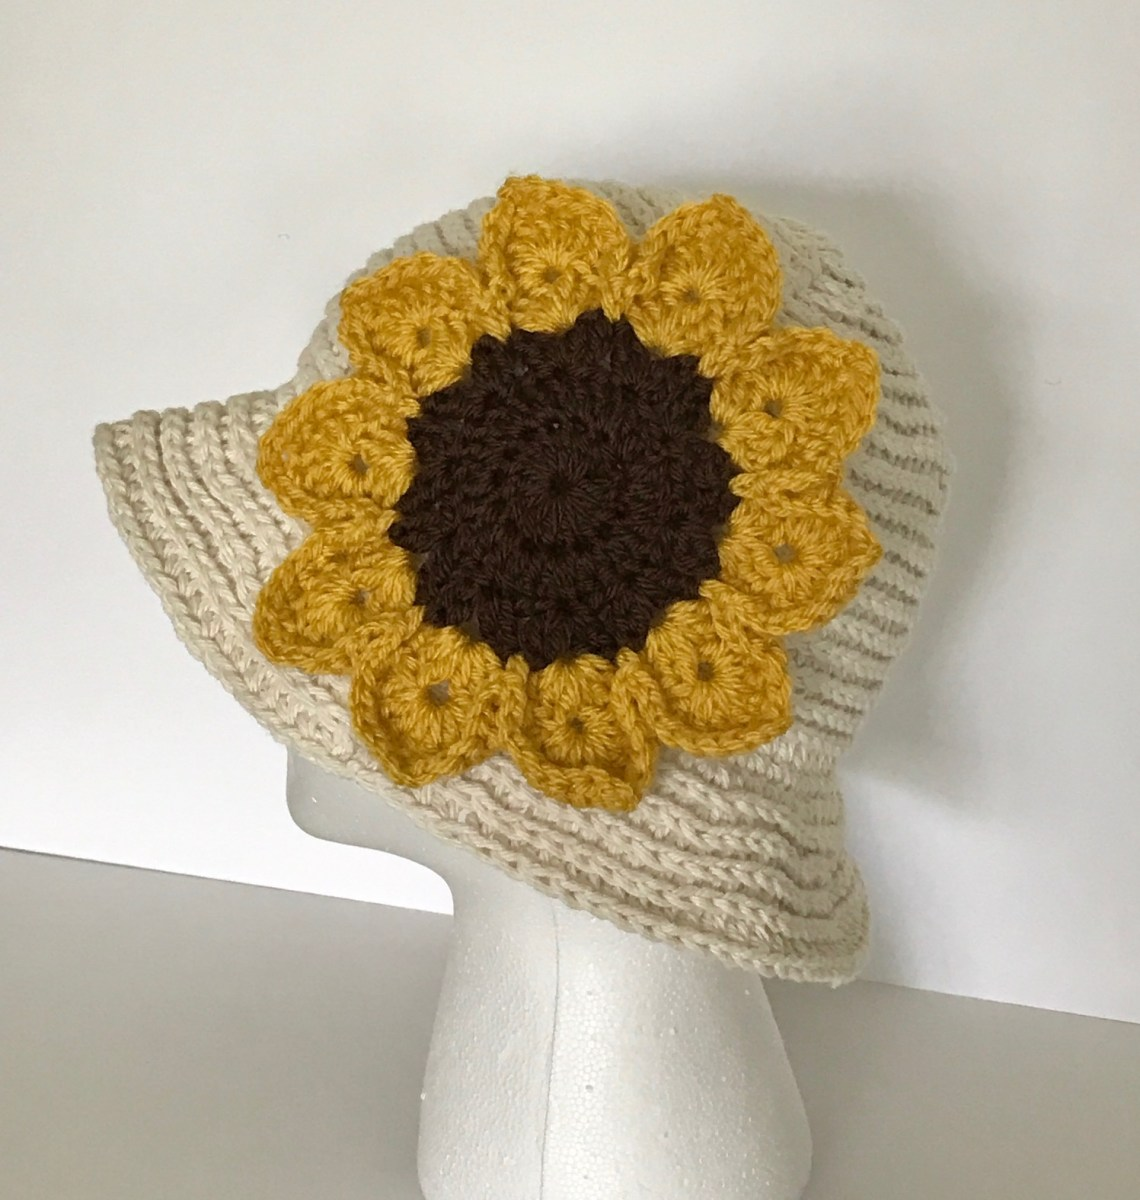 Fabulous End of Summer Crochet Sun Hat